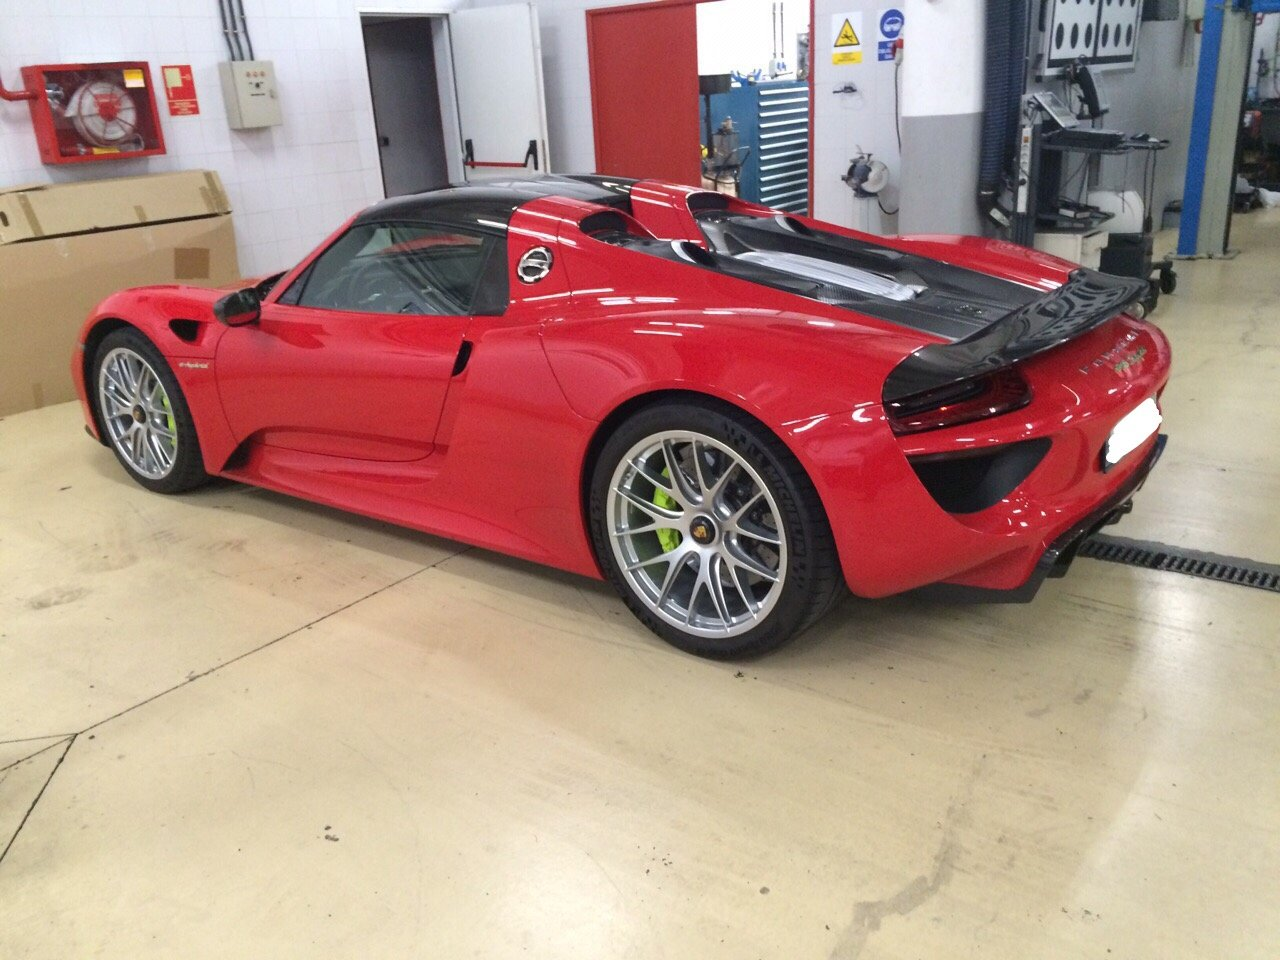 2014 PORSCHE 918 SPYDER - GS CARS For Sale by Auction (picture 3 of 6)